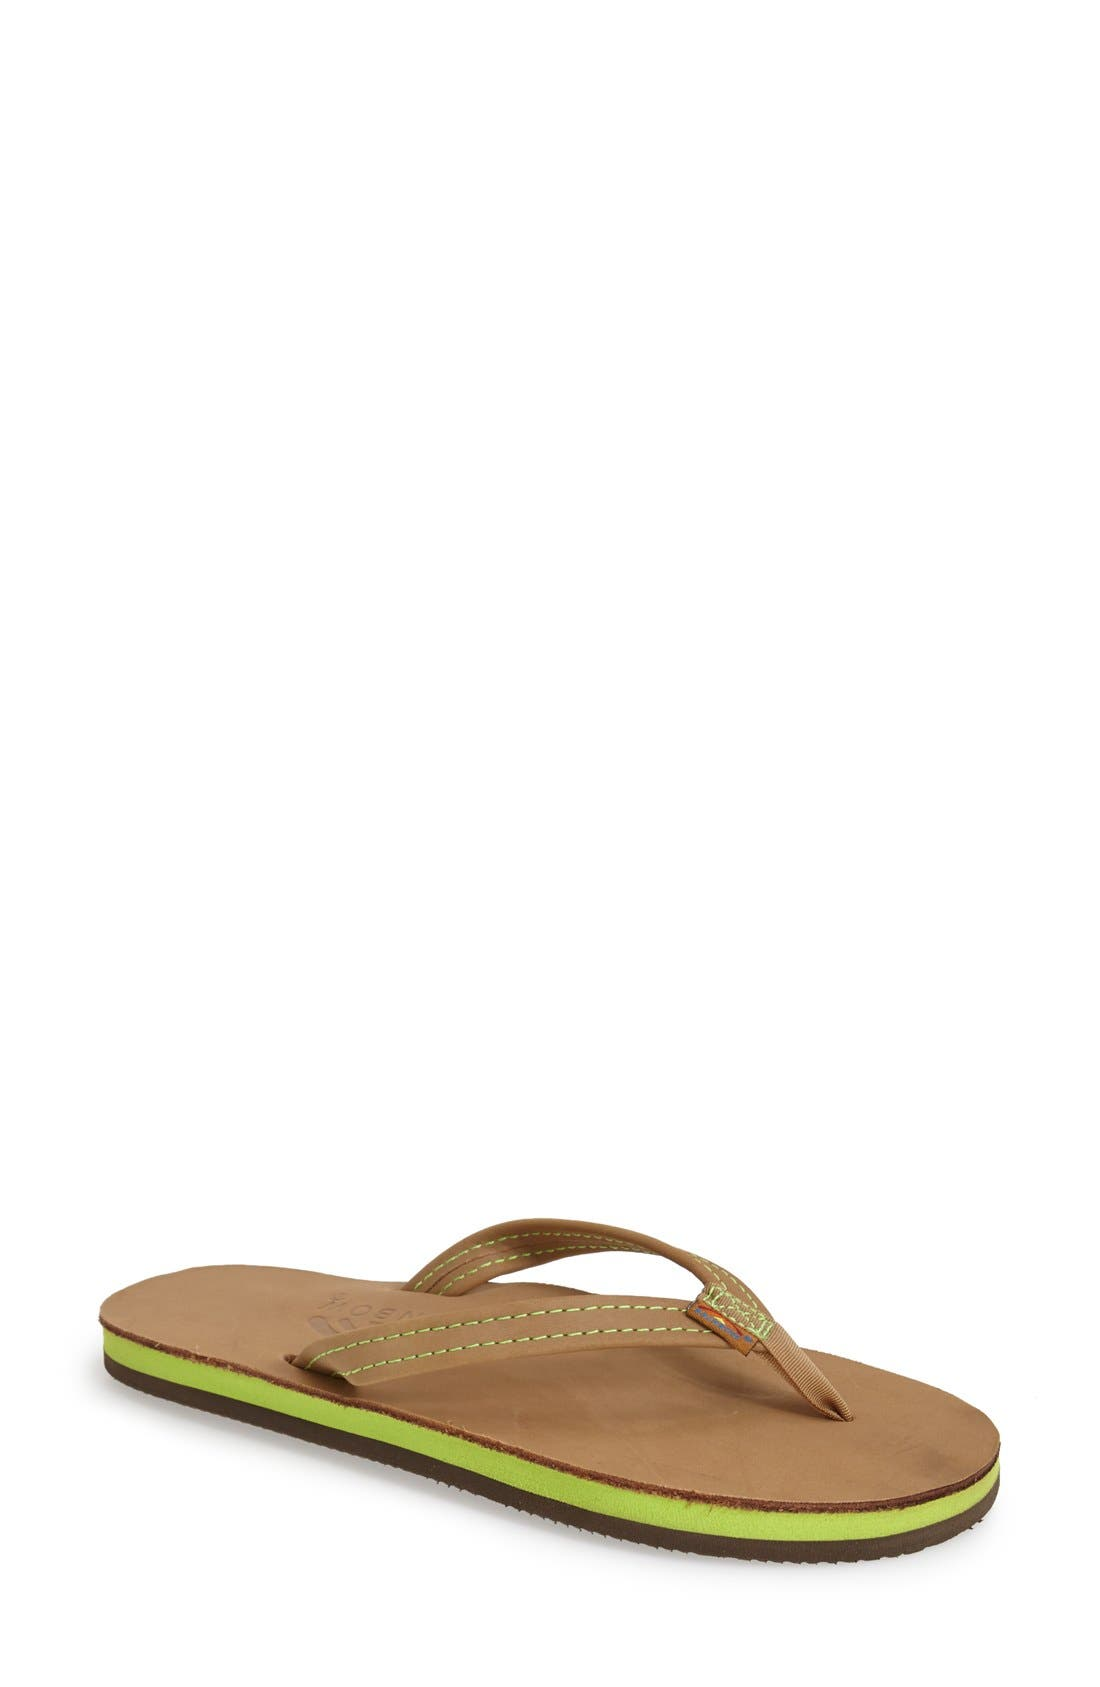 Rainbow Double Layer Thong Sandal,                         Main,                         color, 320